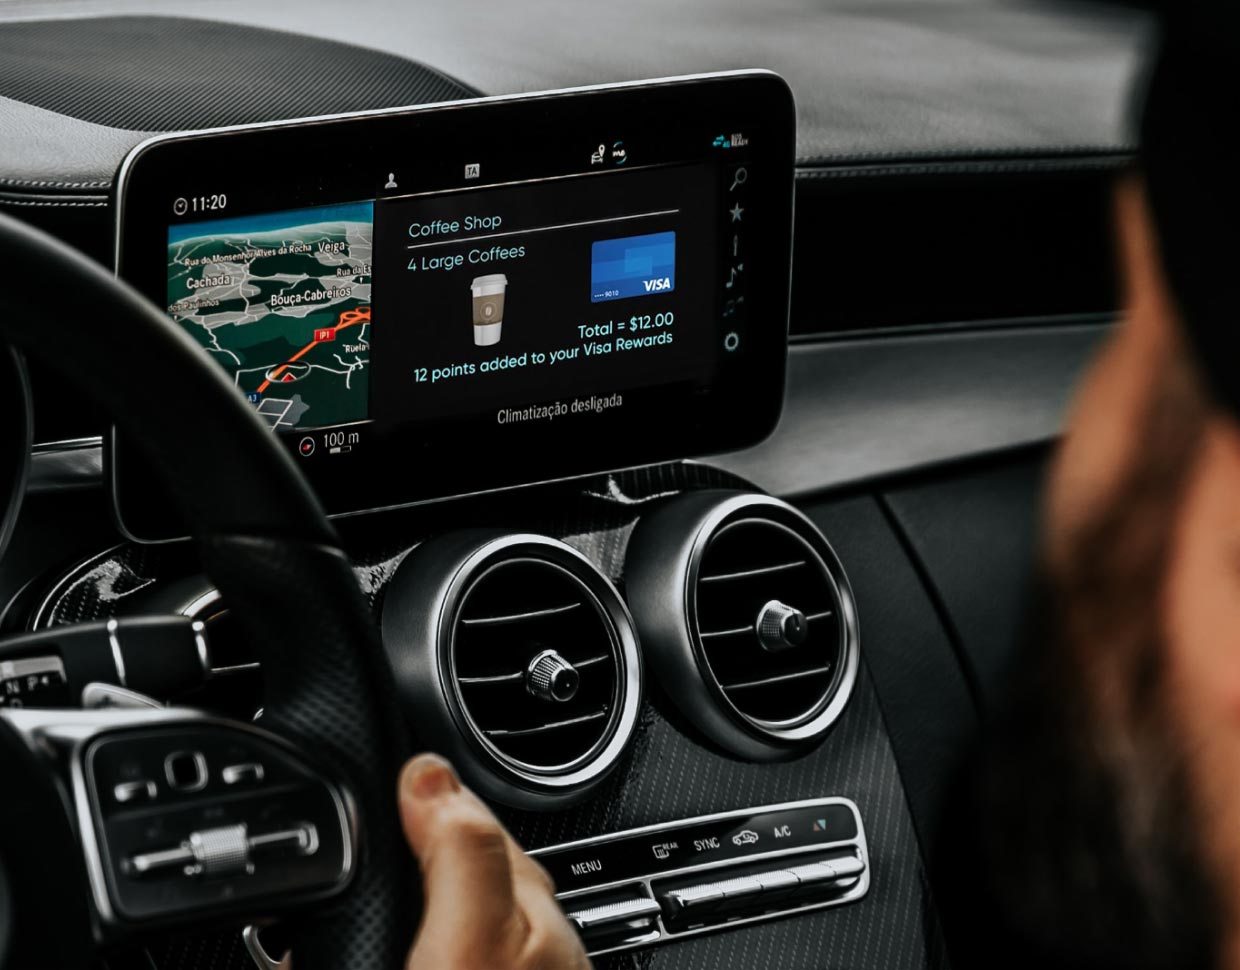 How OEMs can drive adoption of in-car payment solutions while improving the customer experience